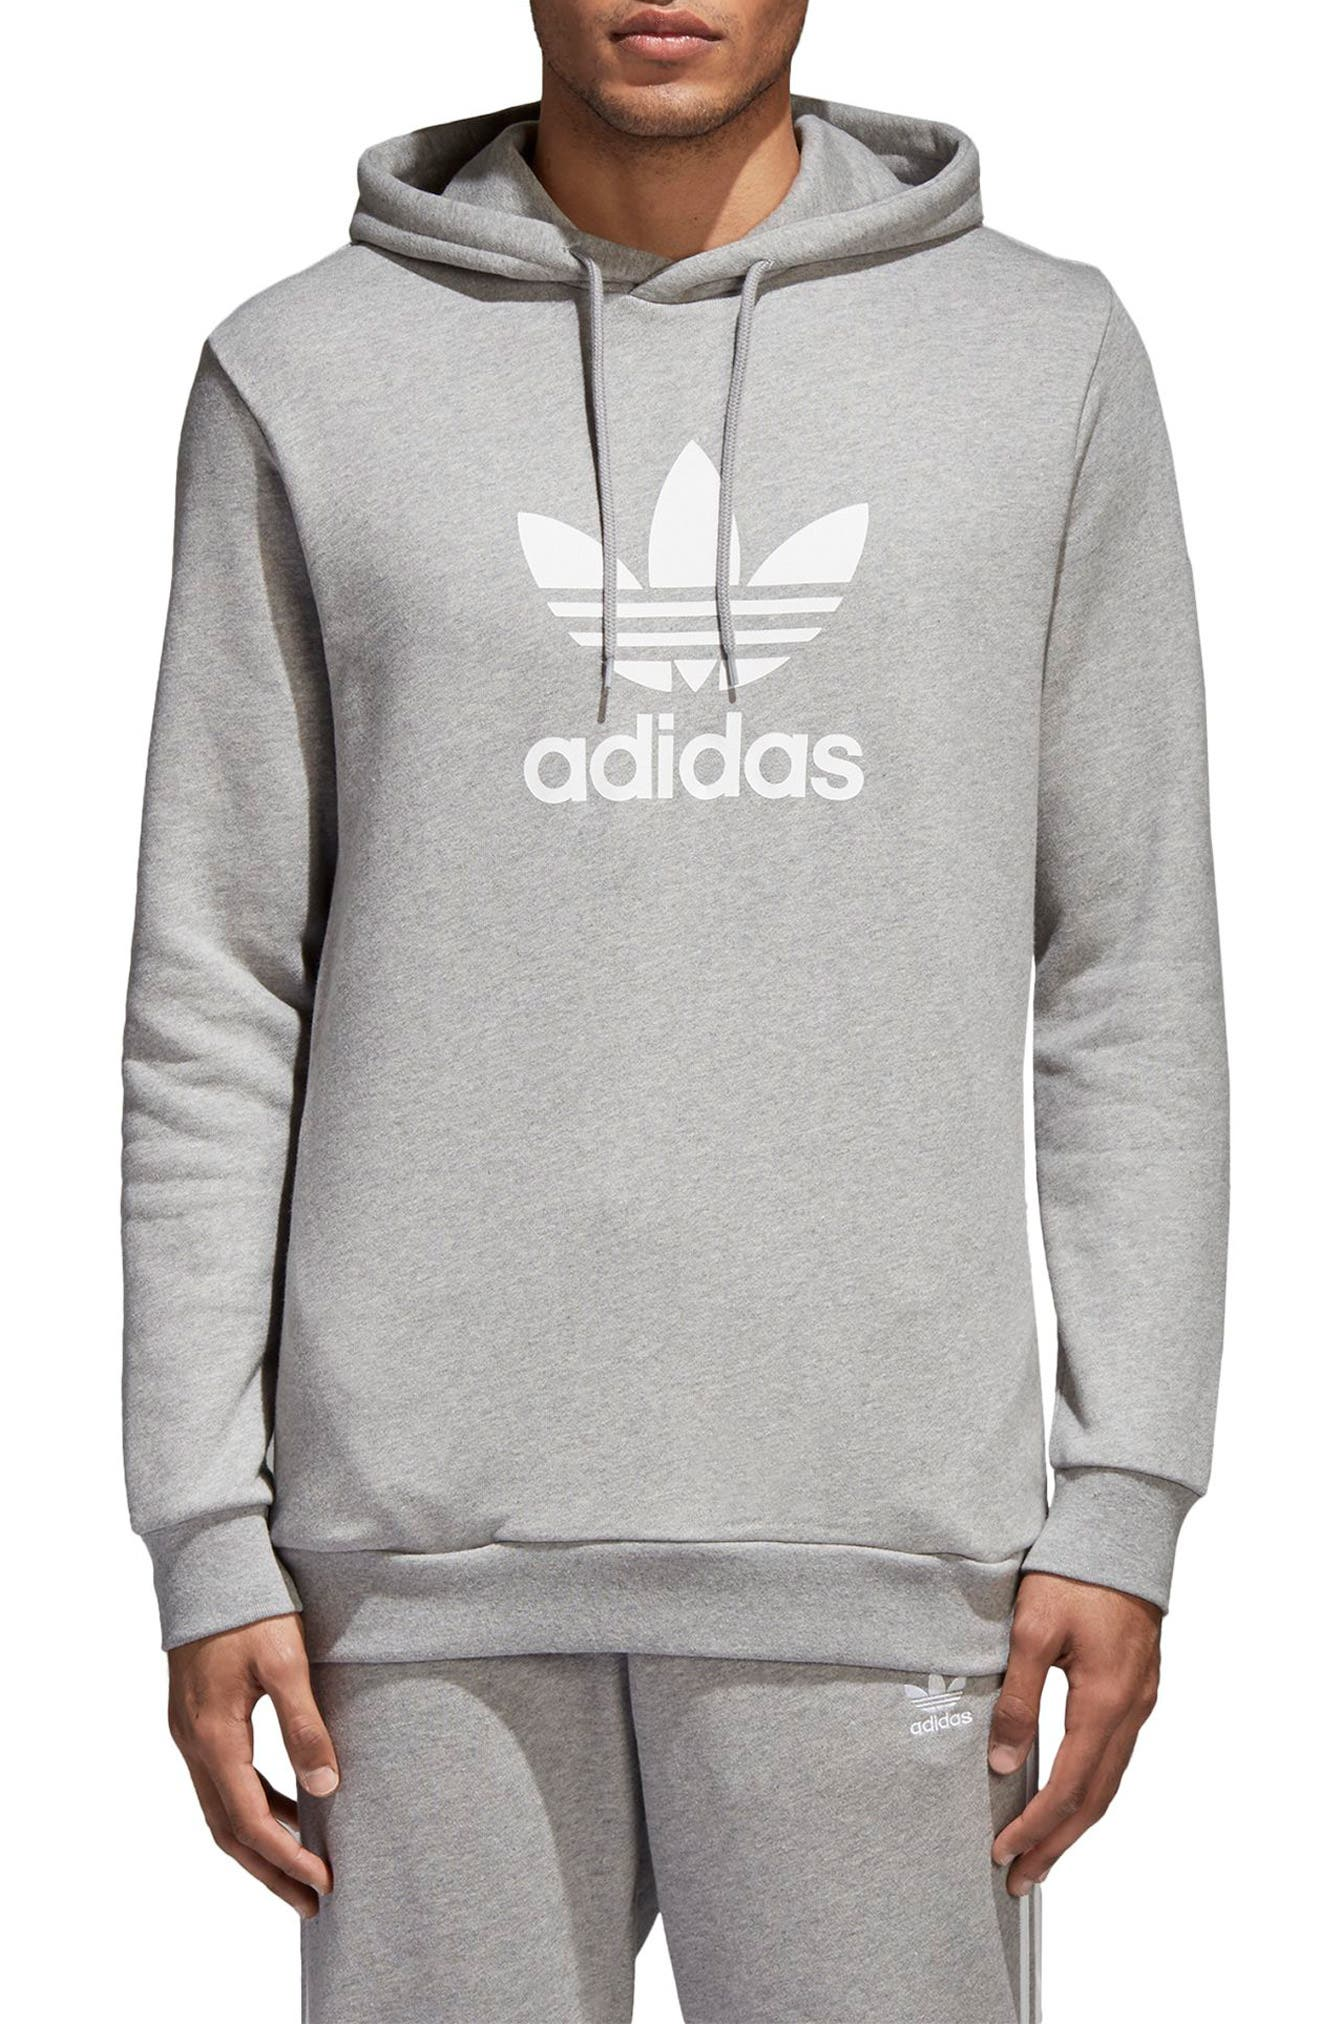 adidas Originals Trefoil Warm-Up Hoodie